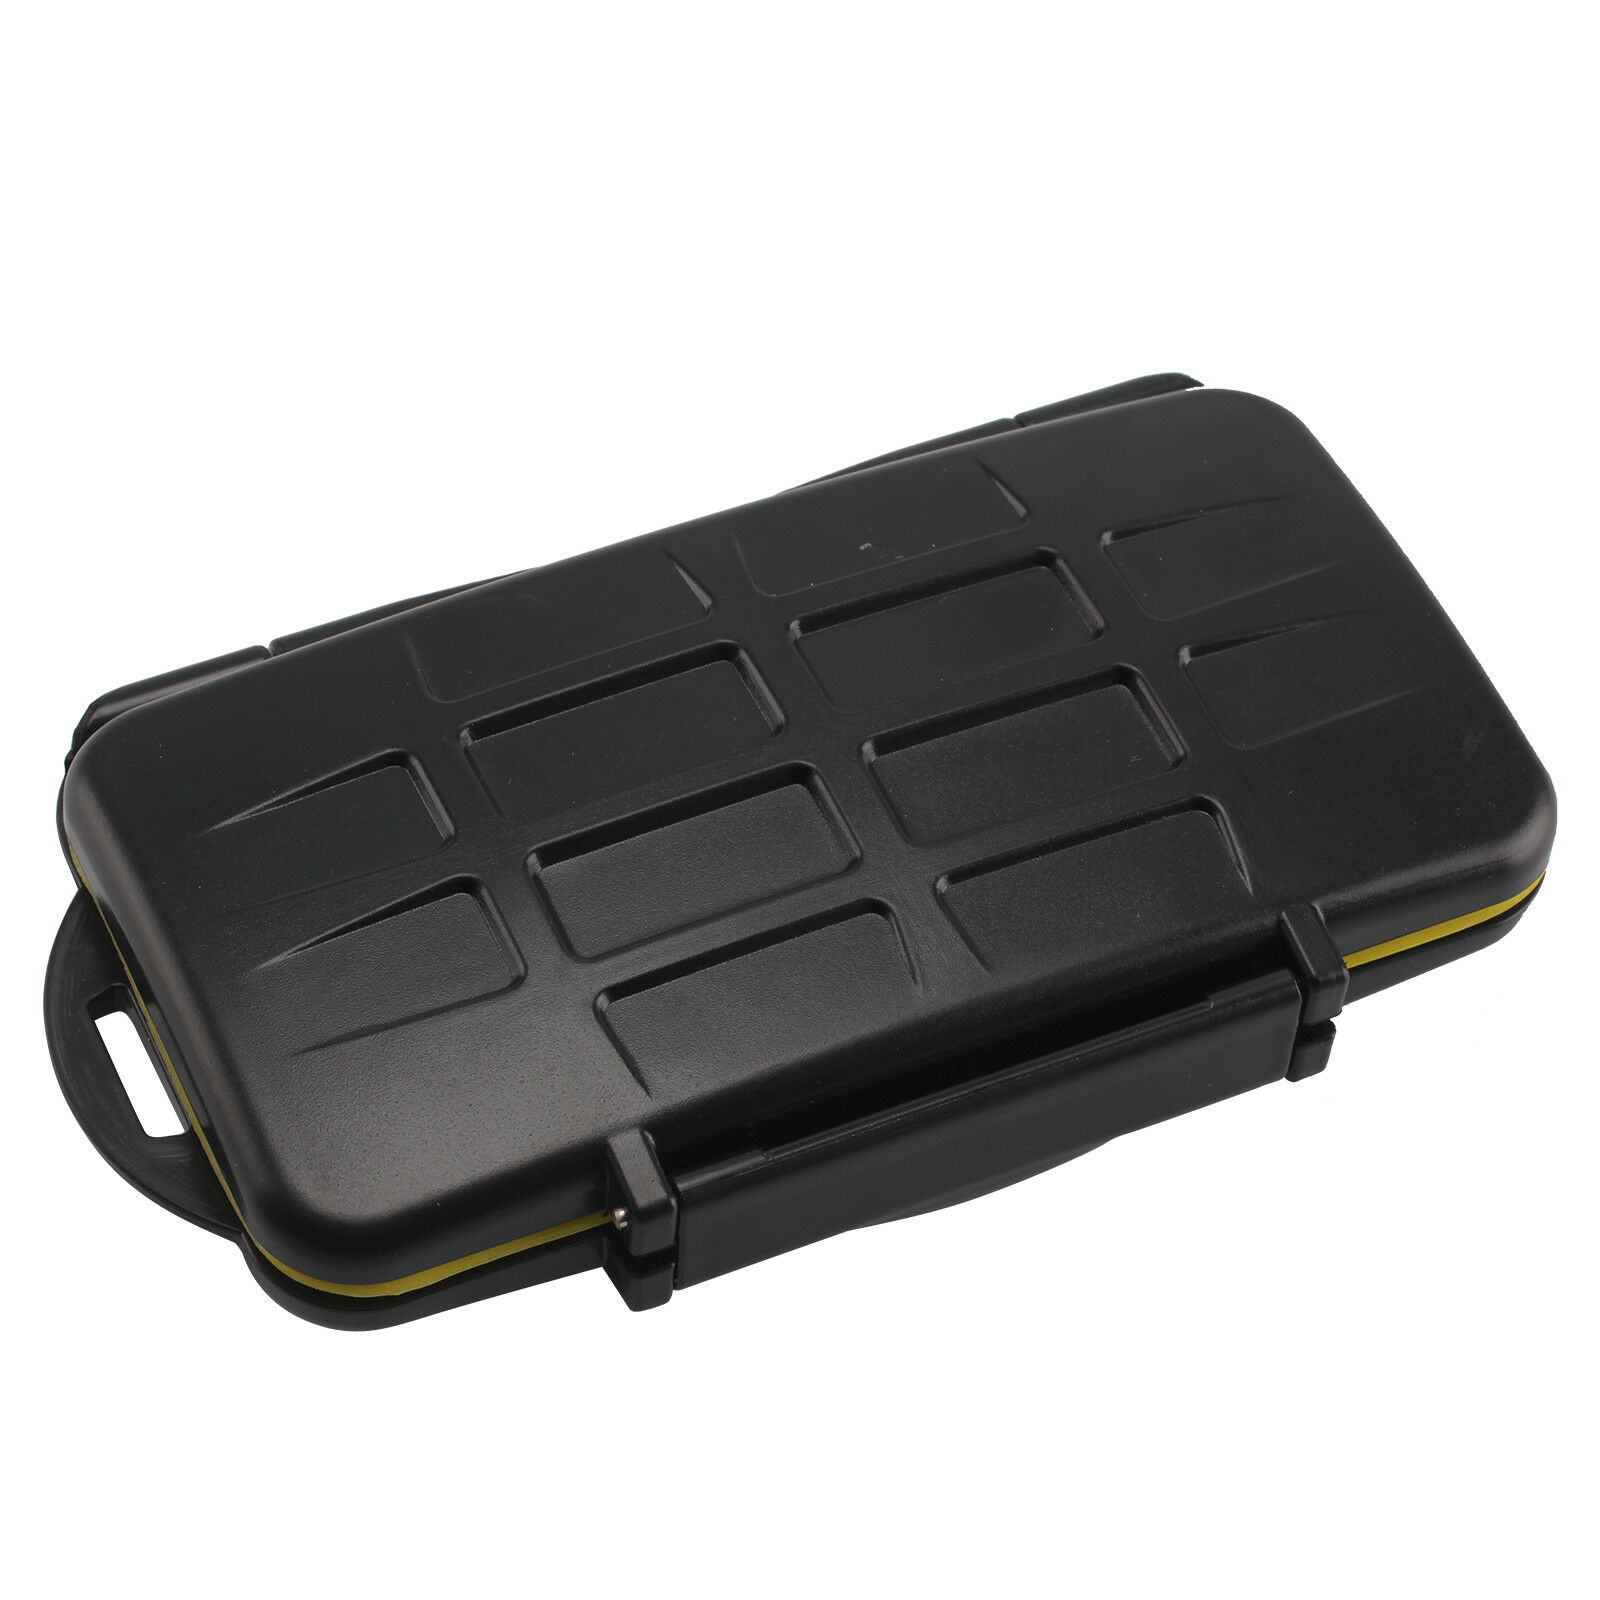 SD24 Memory Card Case Holder Water Resistant Storage Carrying Box black